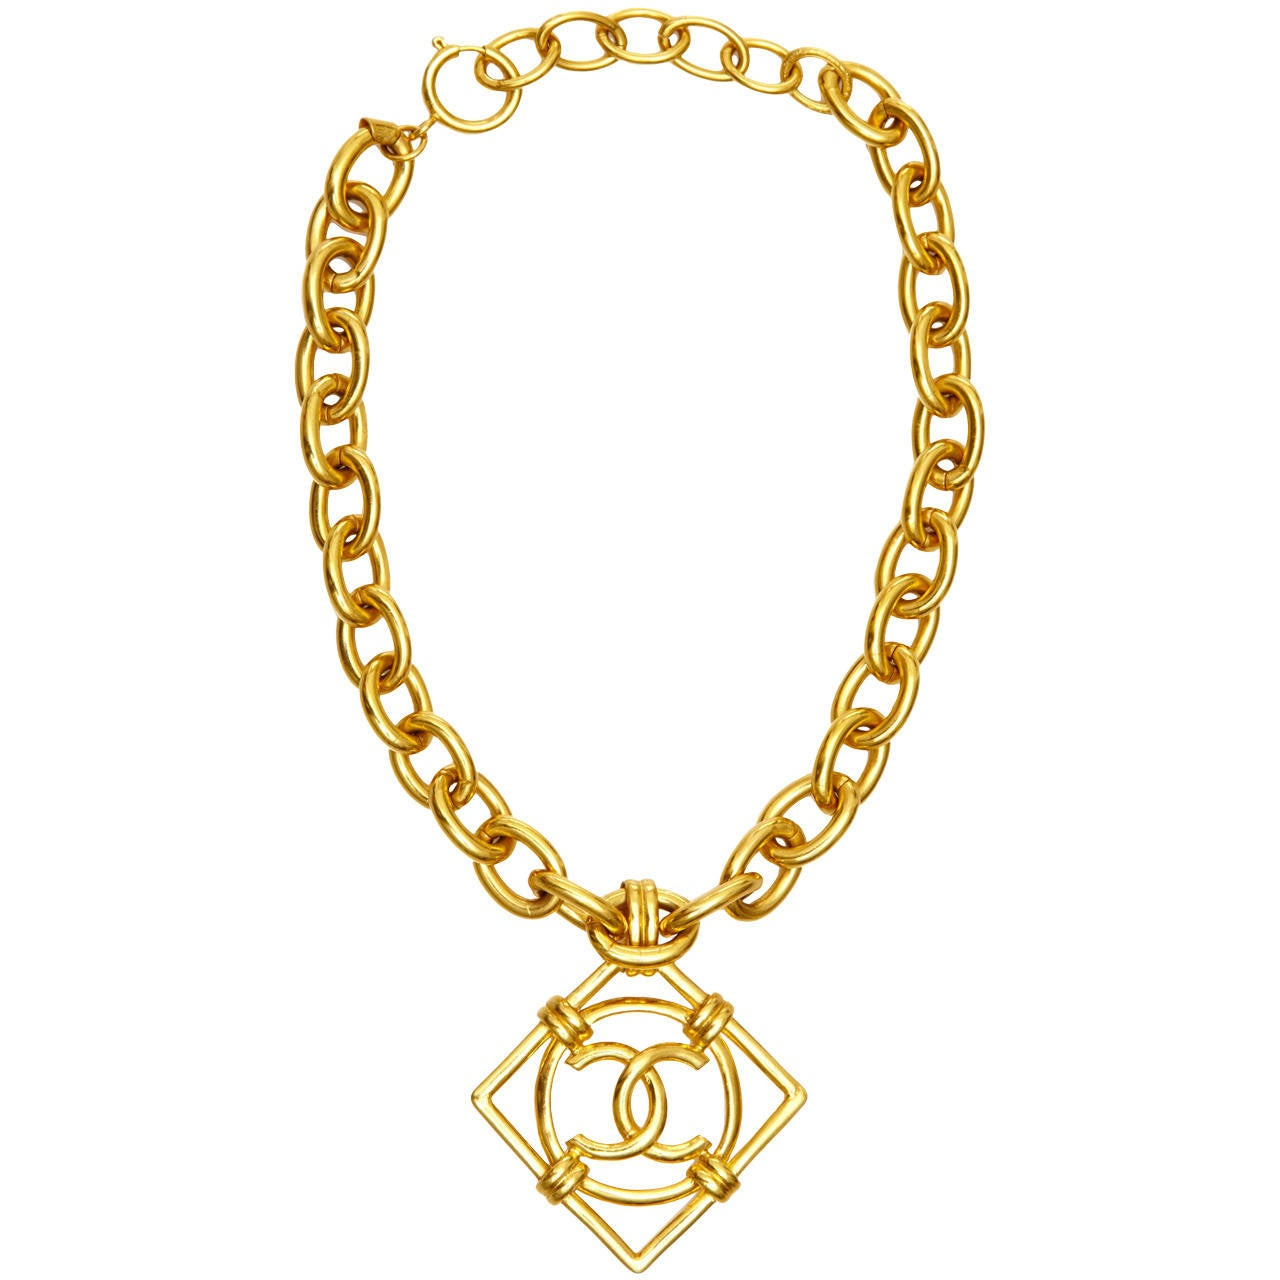 1990s Chanel Double C Necklace at 1stdibs